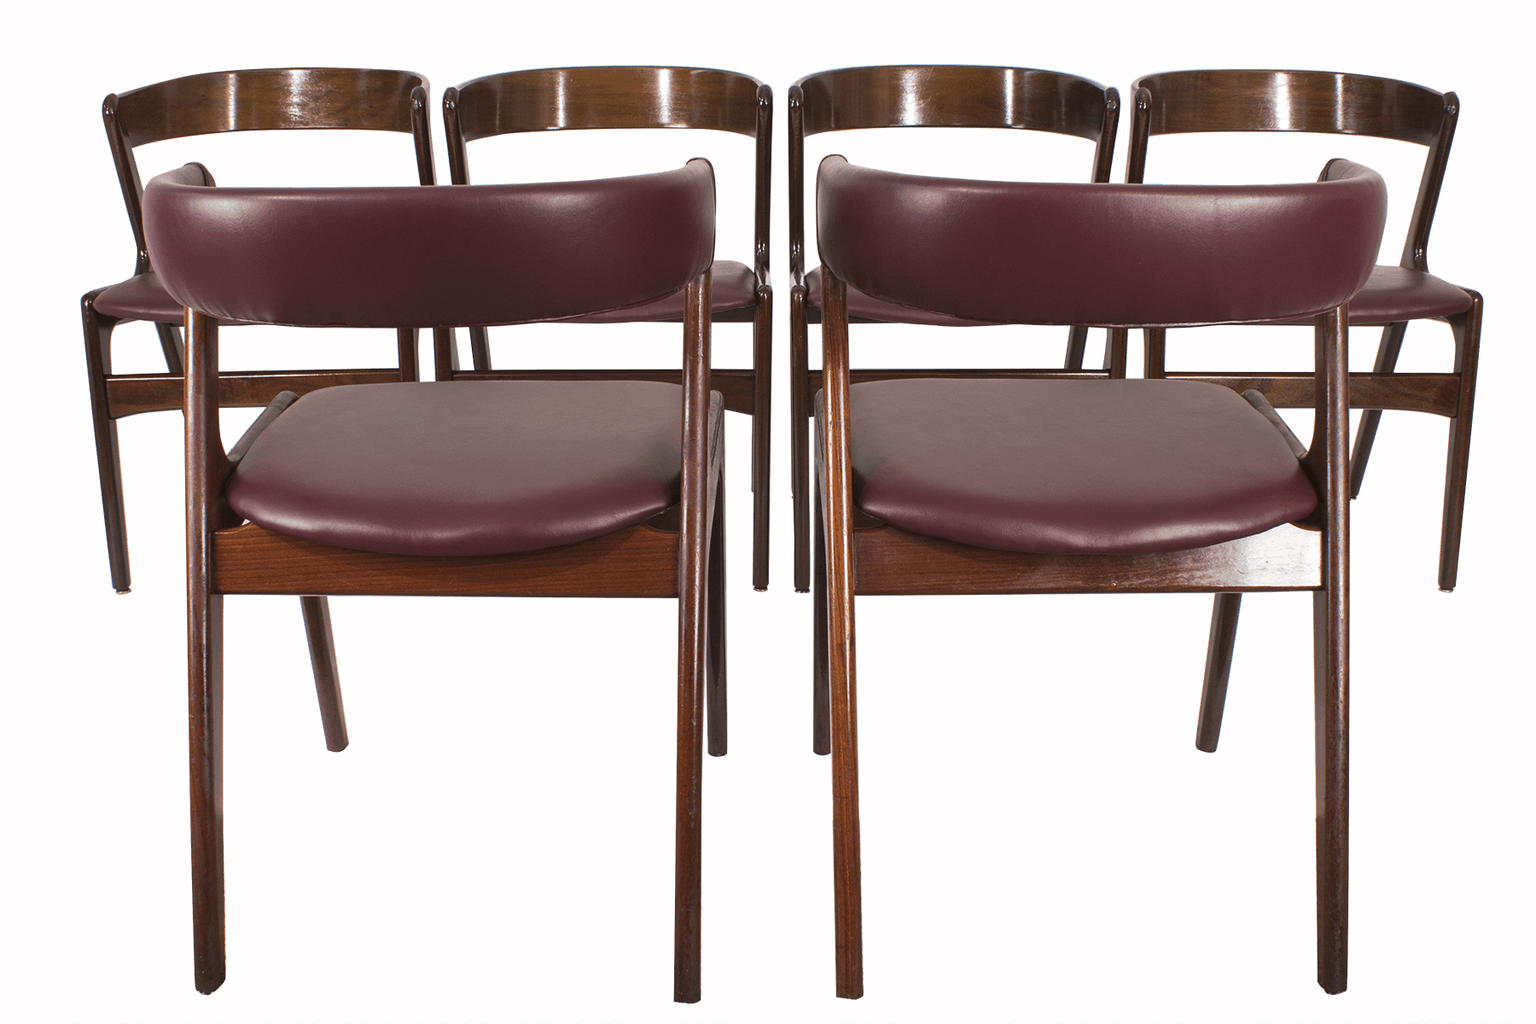 This set of Kai Kristiansen dining room chairs comprises two end chairs with upholstered backs and four side chairs with plain backs.